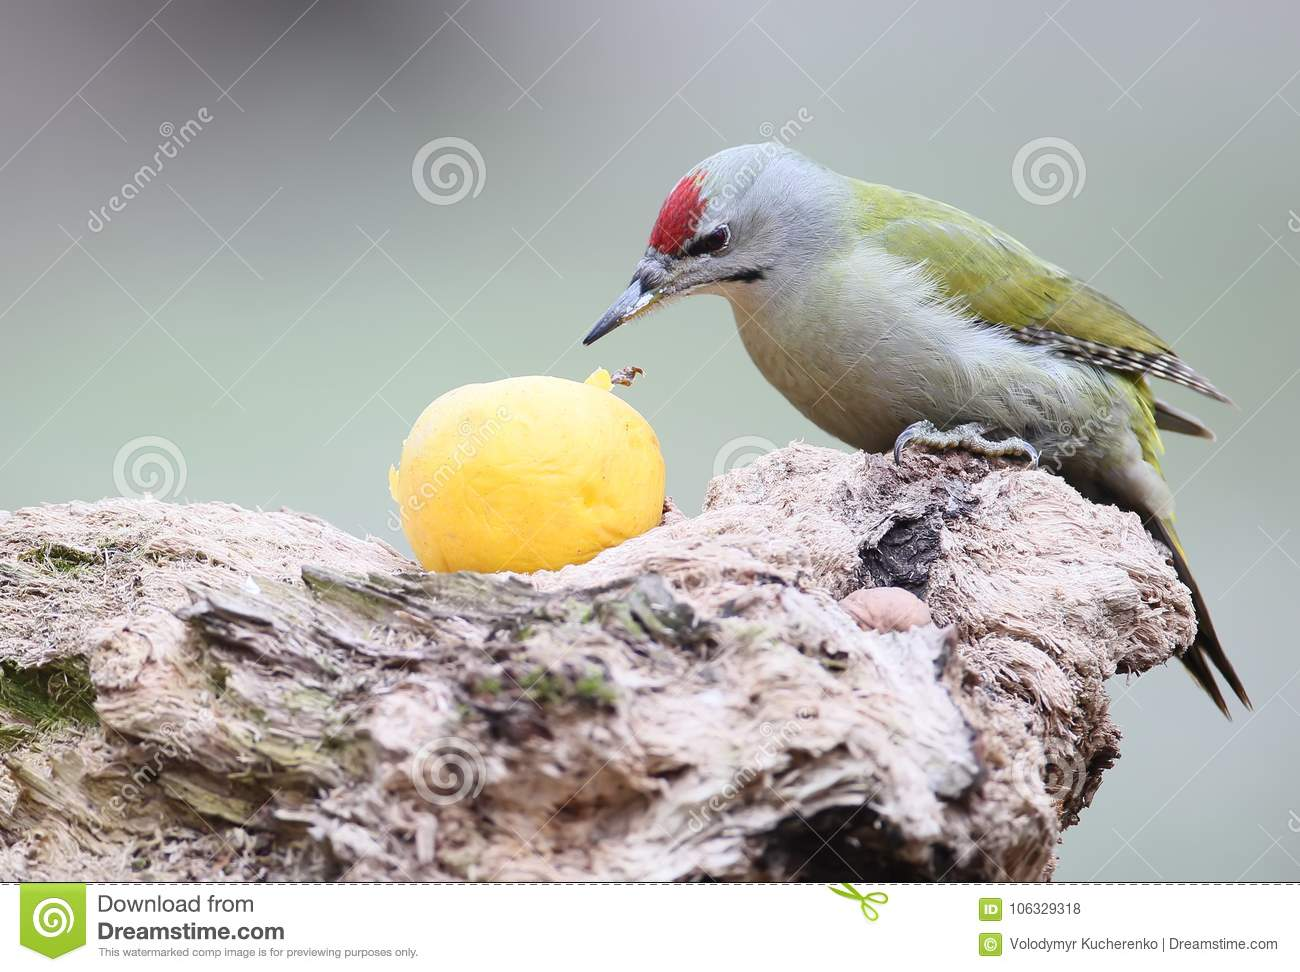 A male of gey headed woodpecker sits on the log and eats large yellow apple.